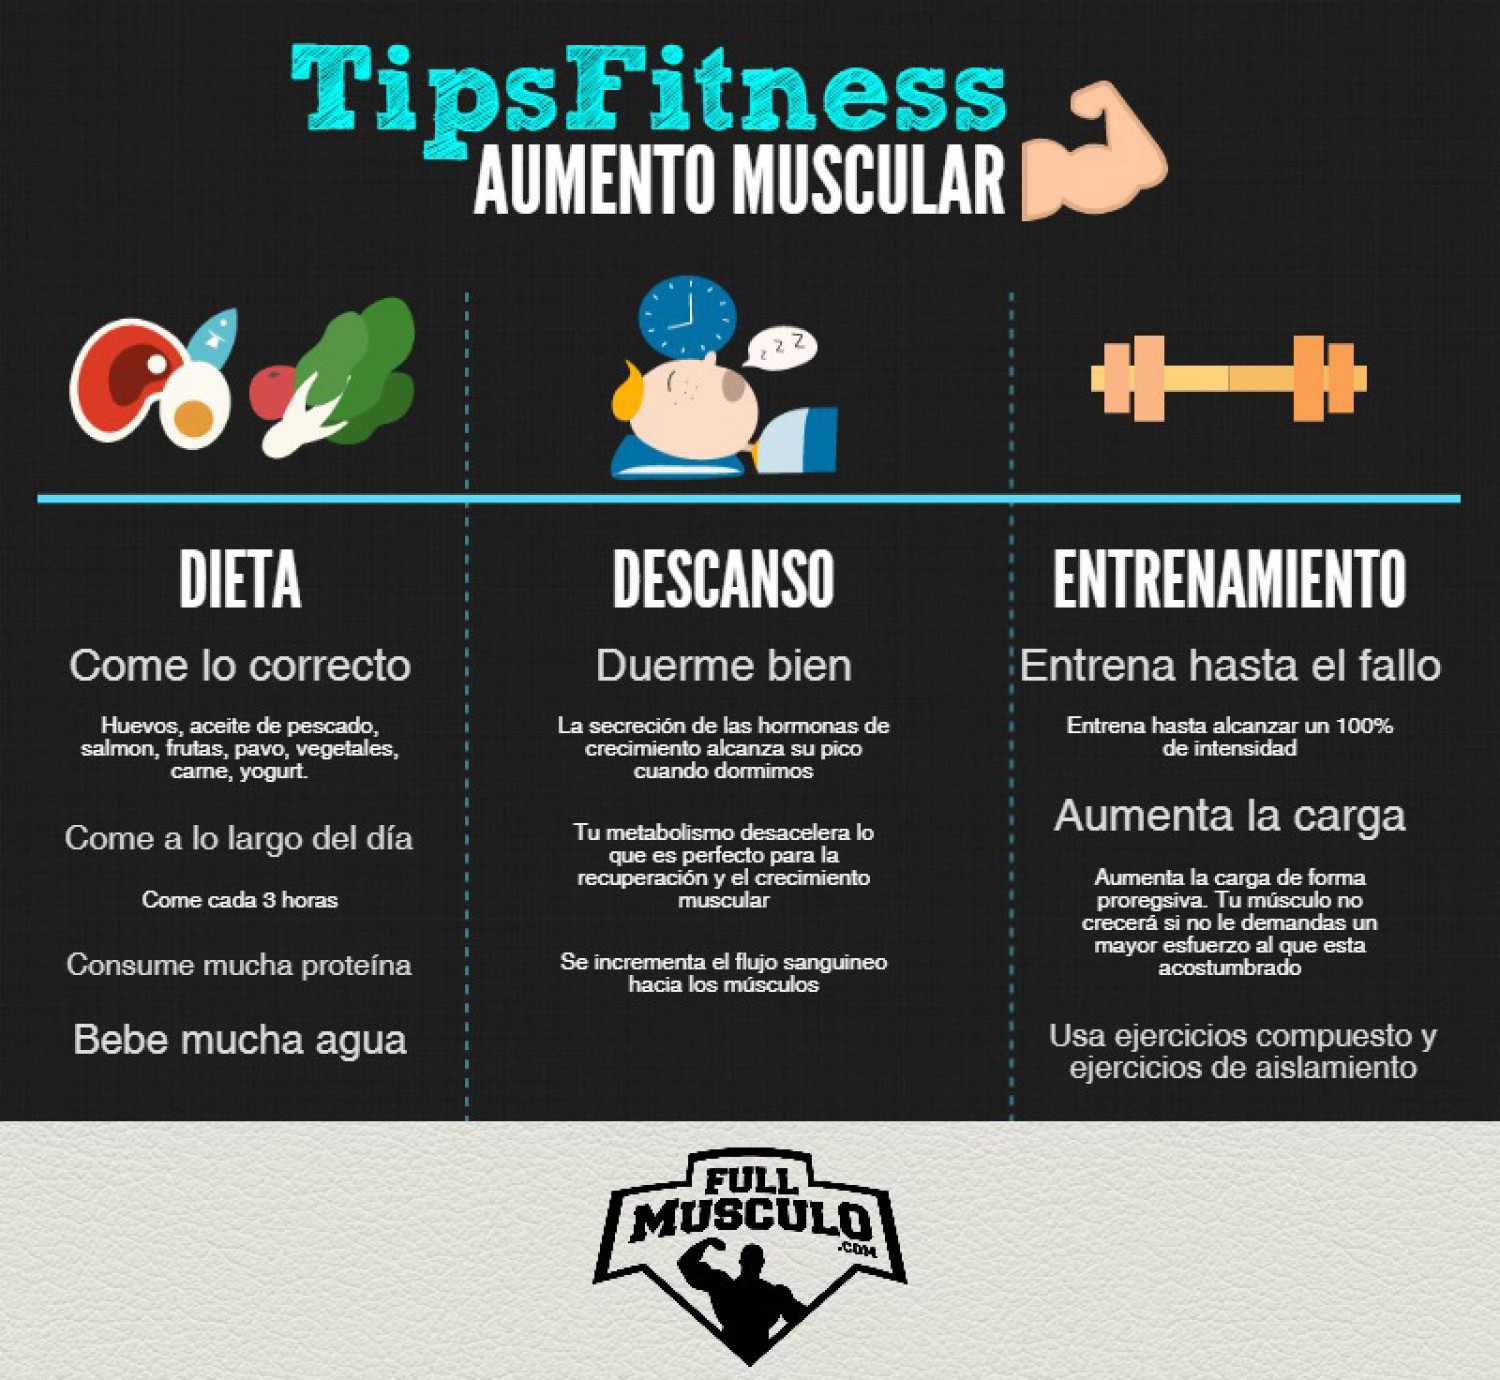 Tips fitness para aumentar masa muscular Infographic